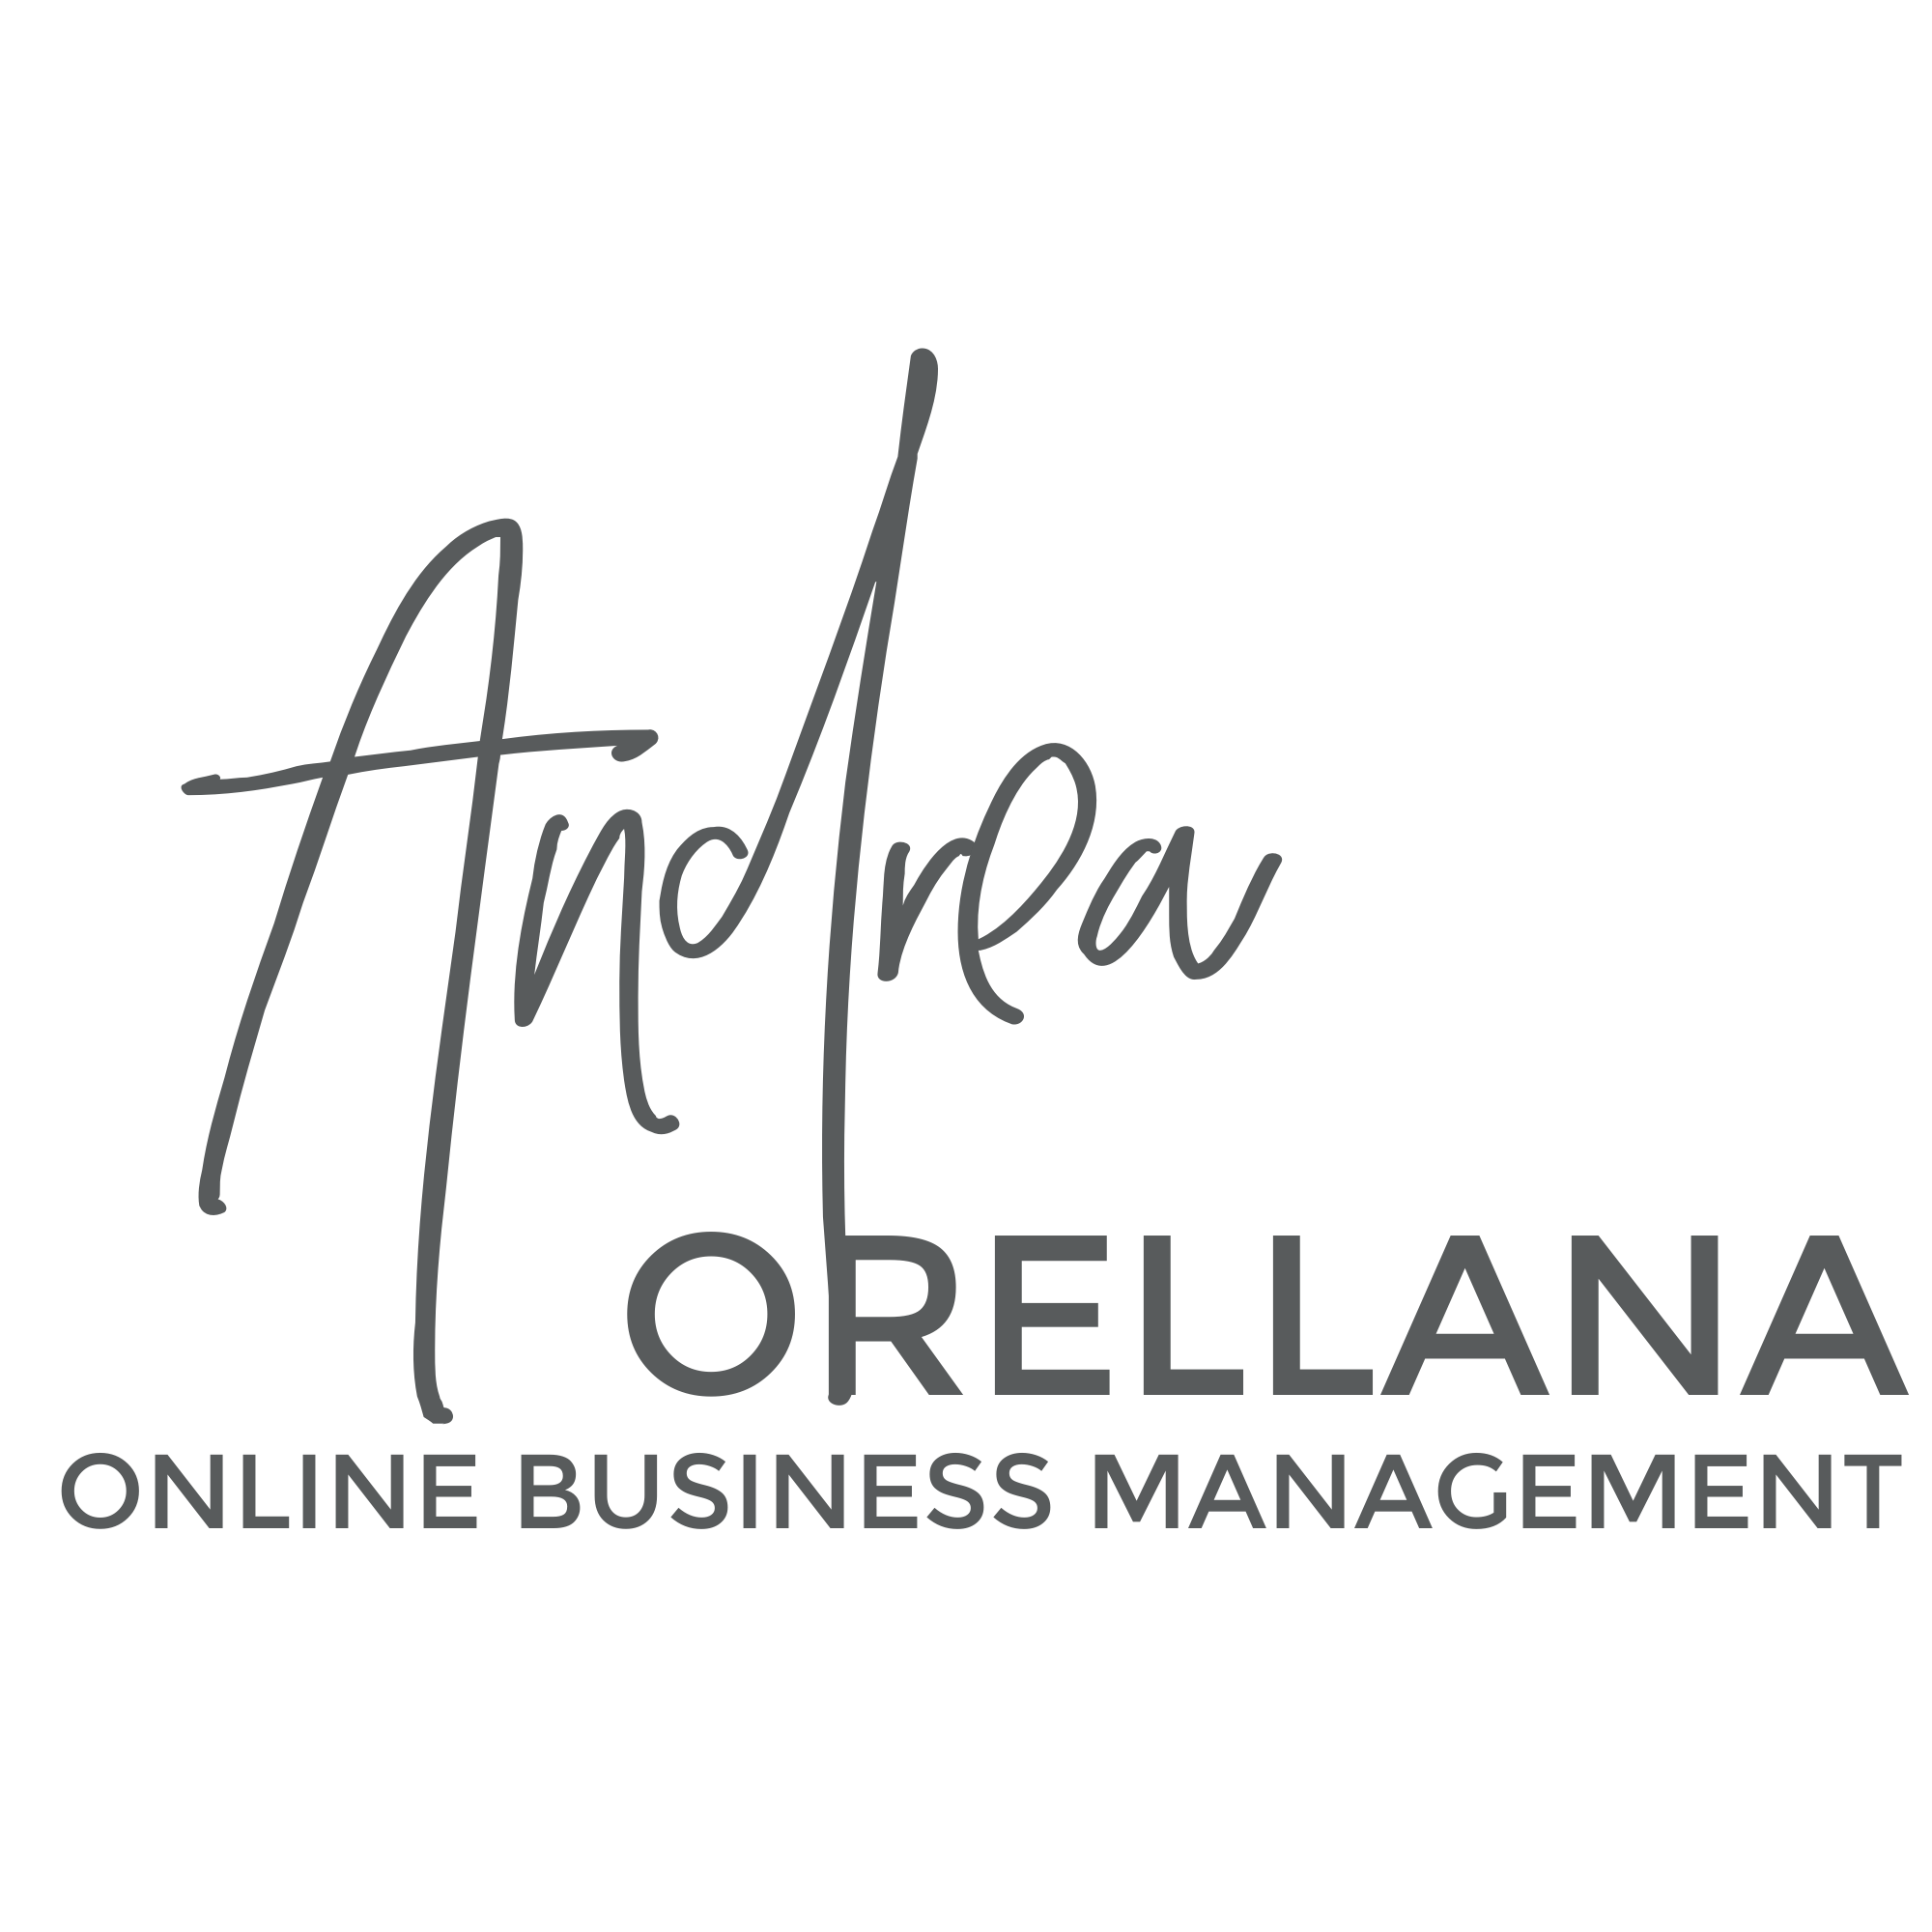 Andrea Orellana Online Business Management